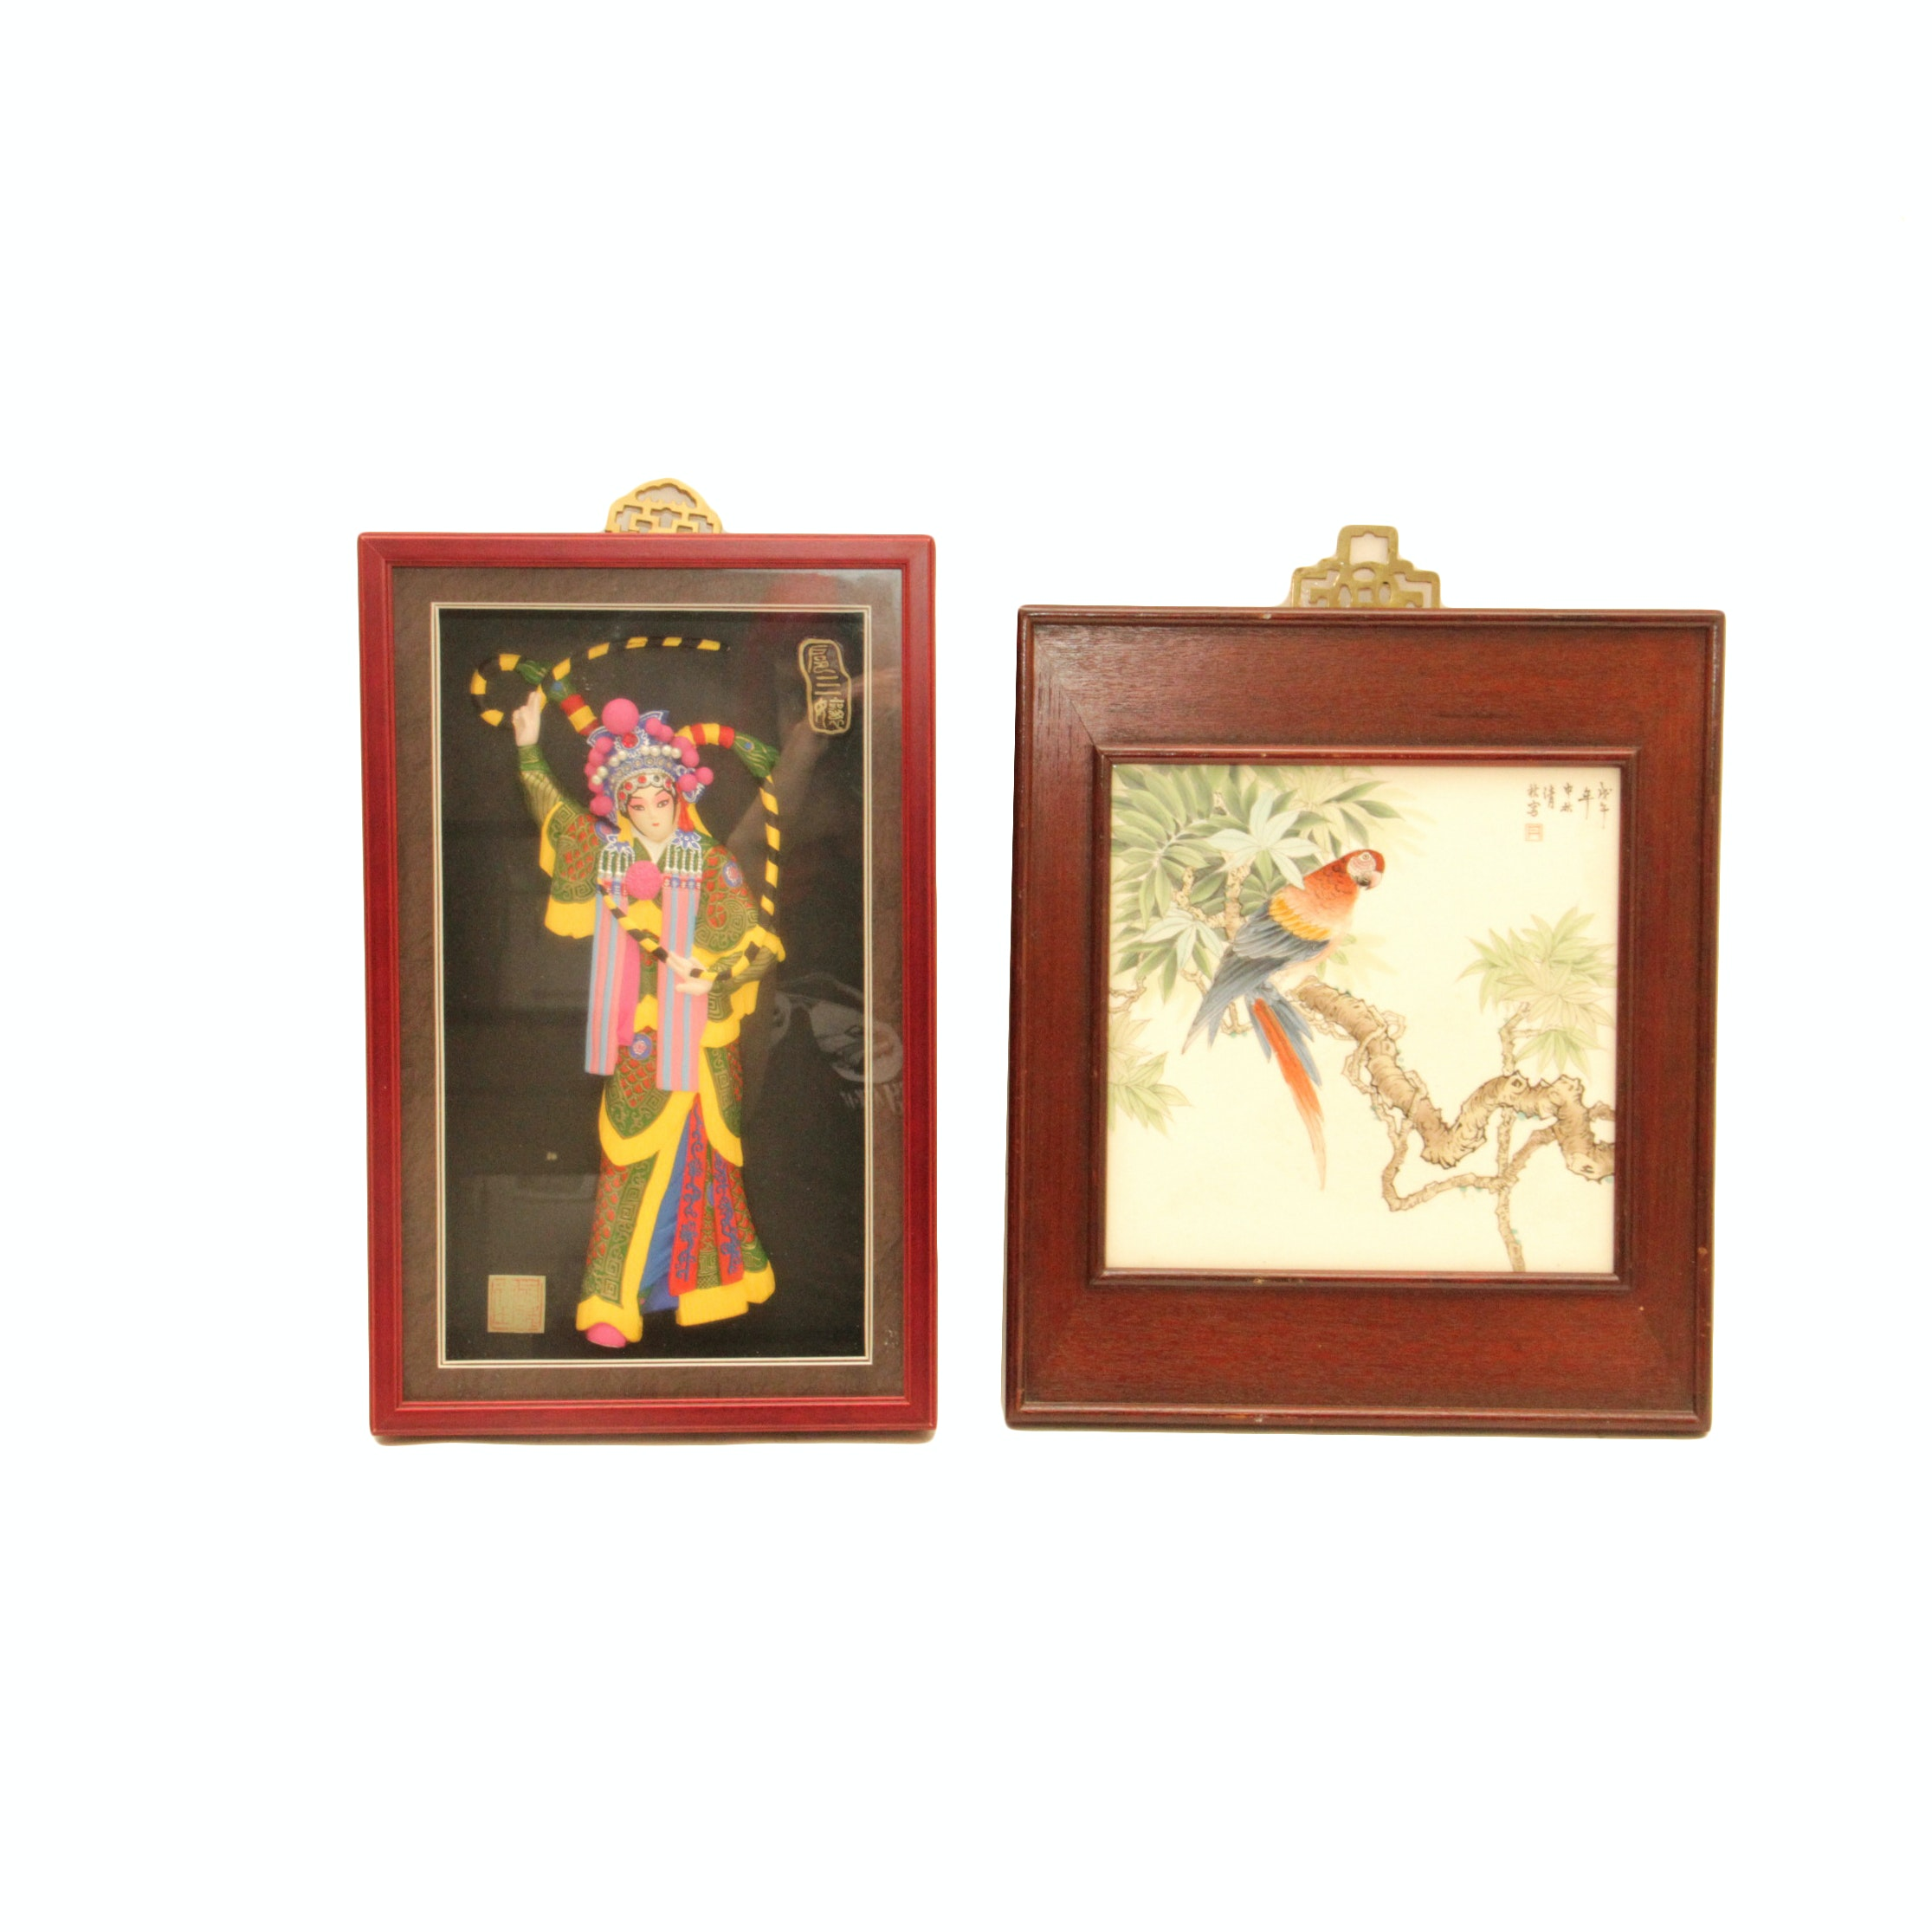 Framed Painted Tile Artwork